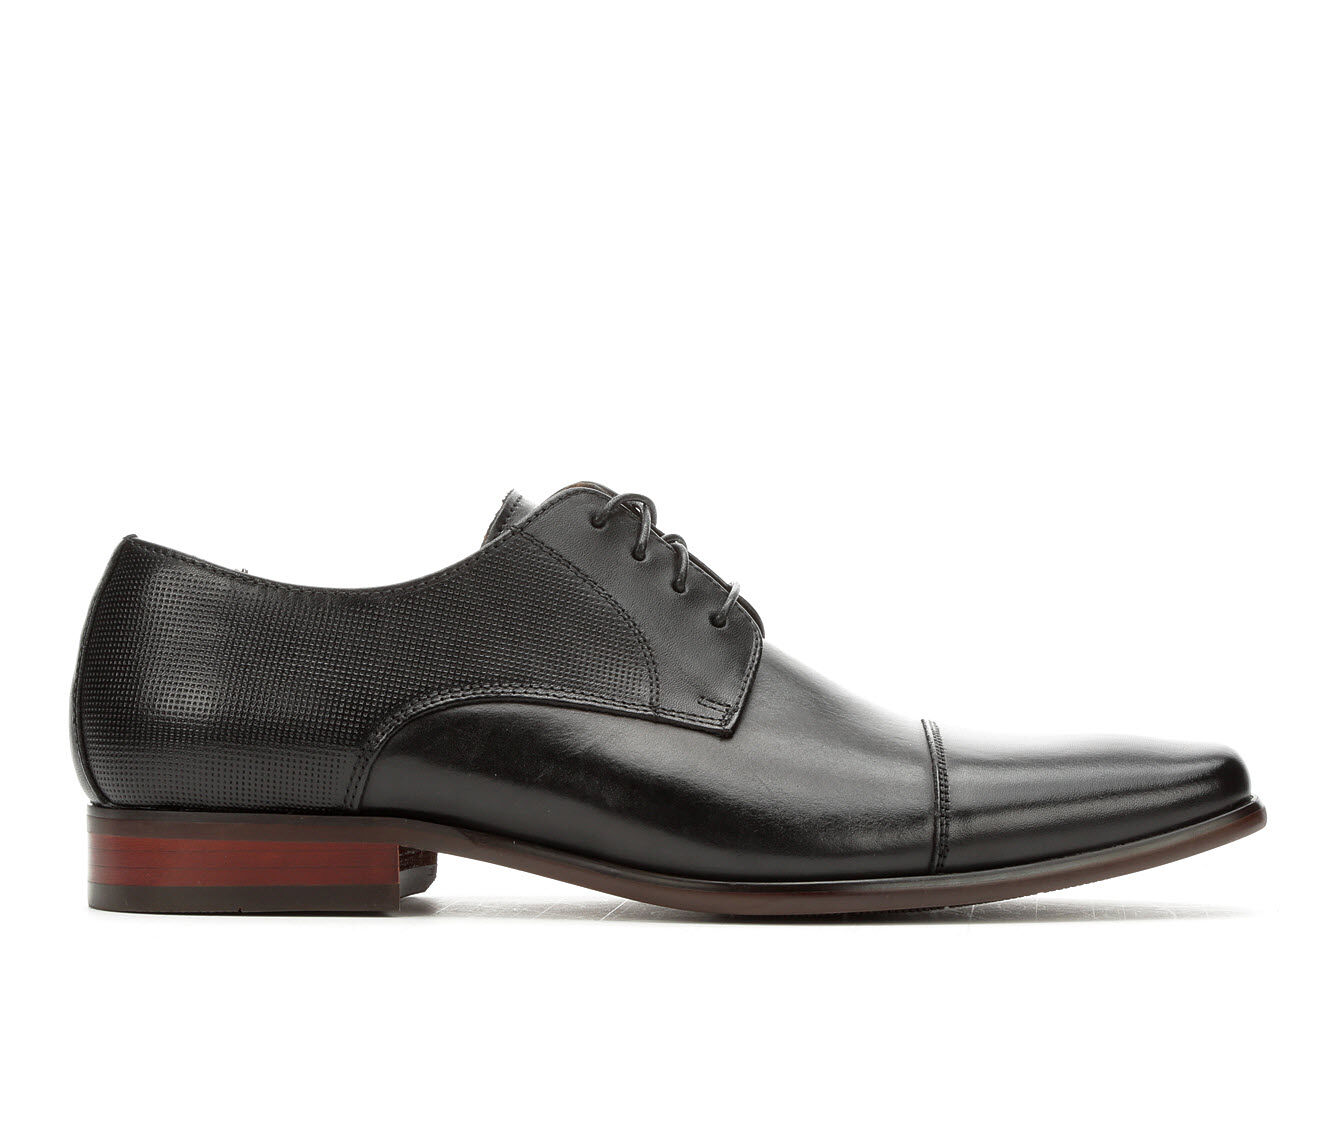 Men's Florsheim Scottsdale Cap Toe Oxford Dress Shoes Black